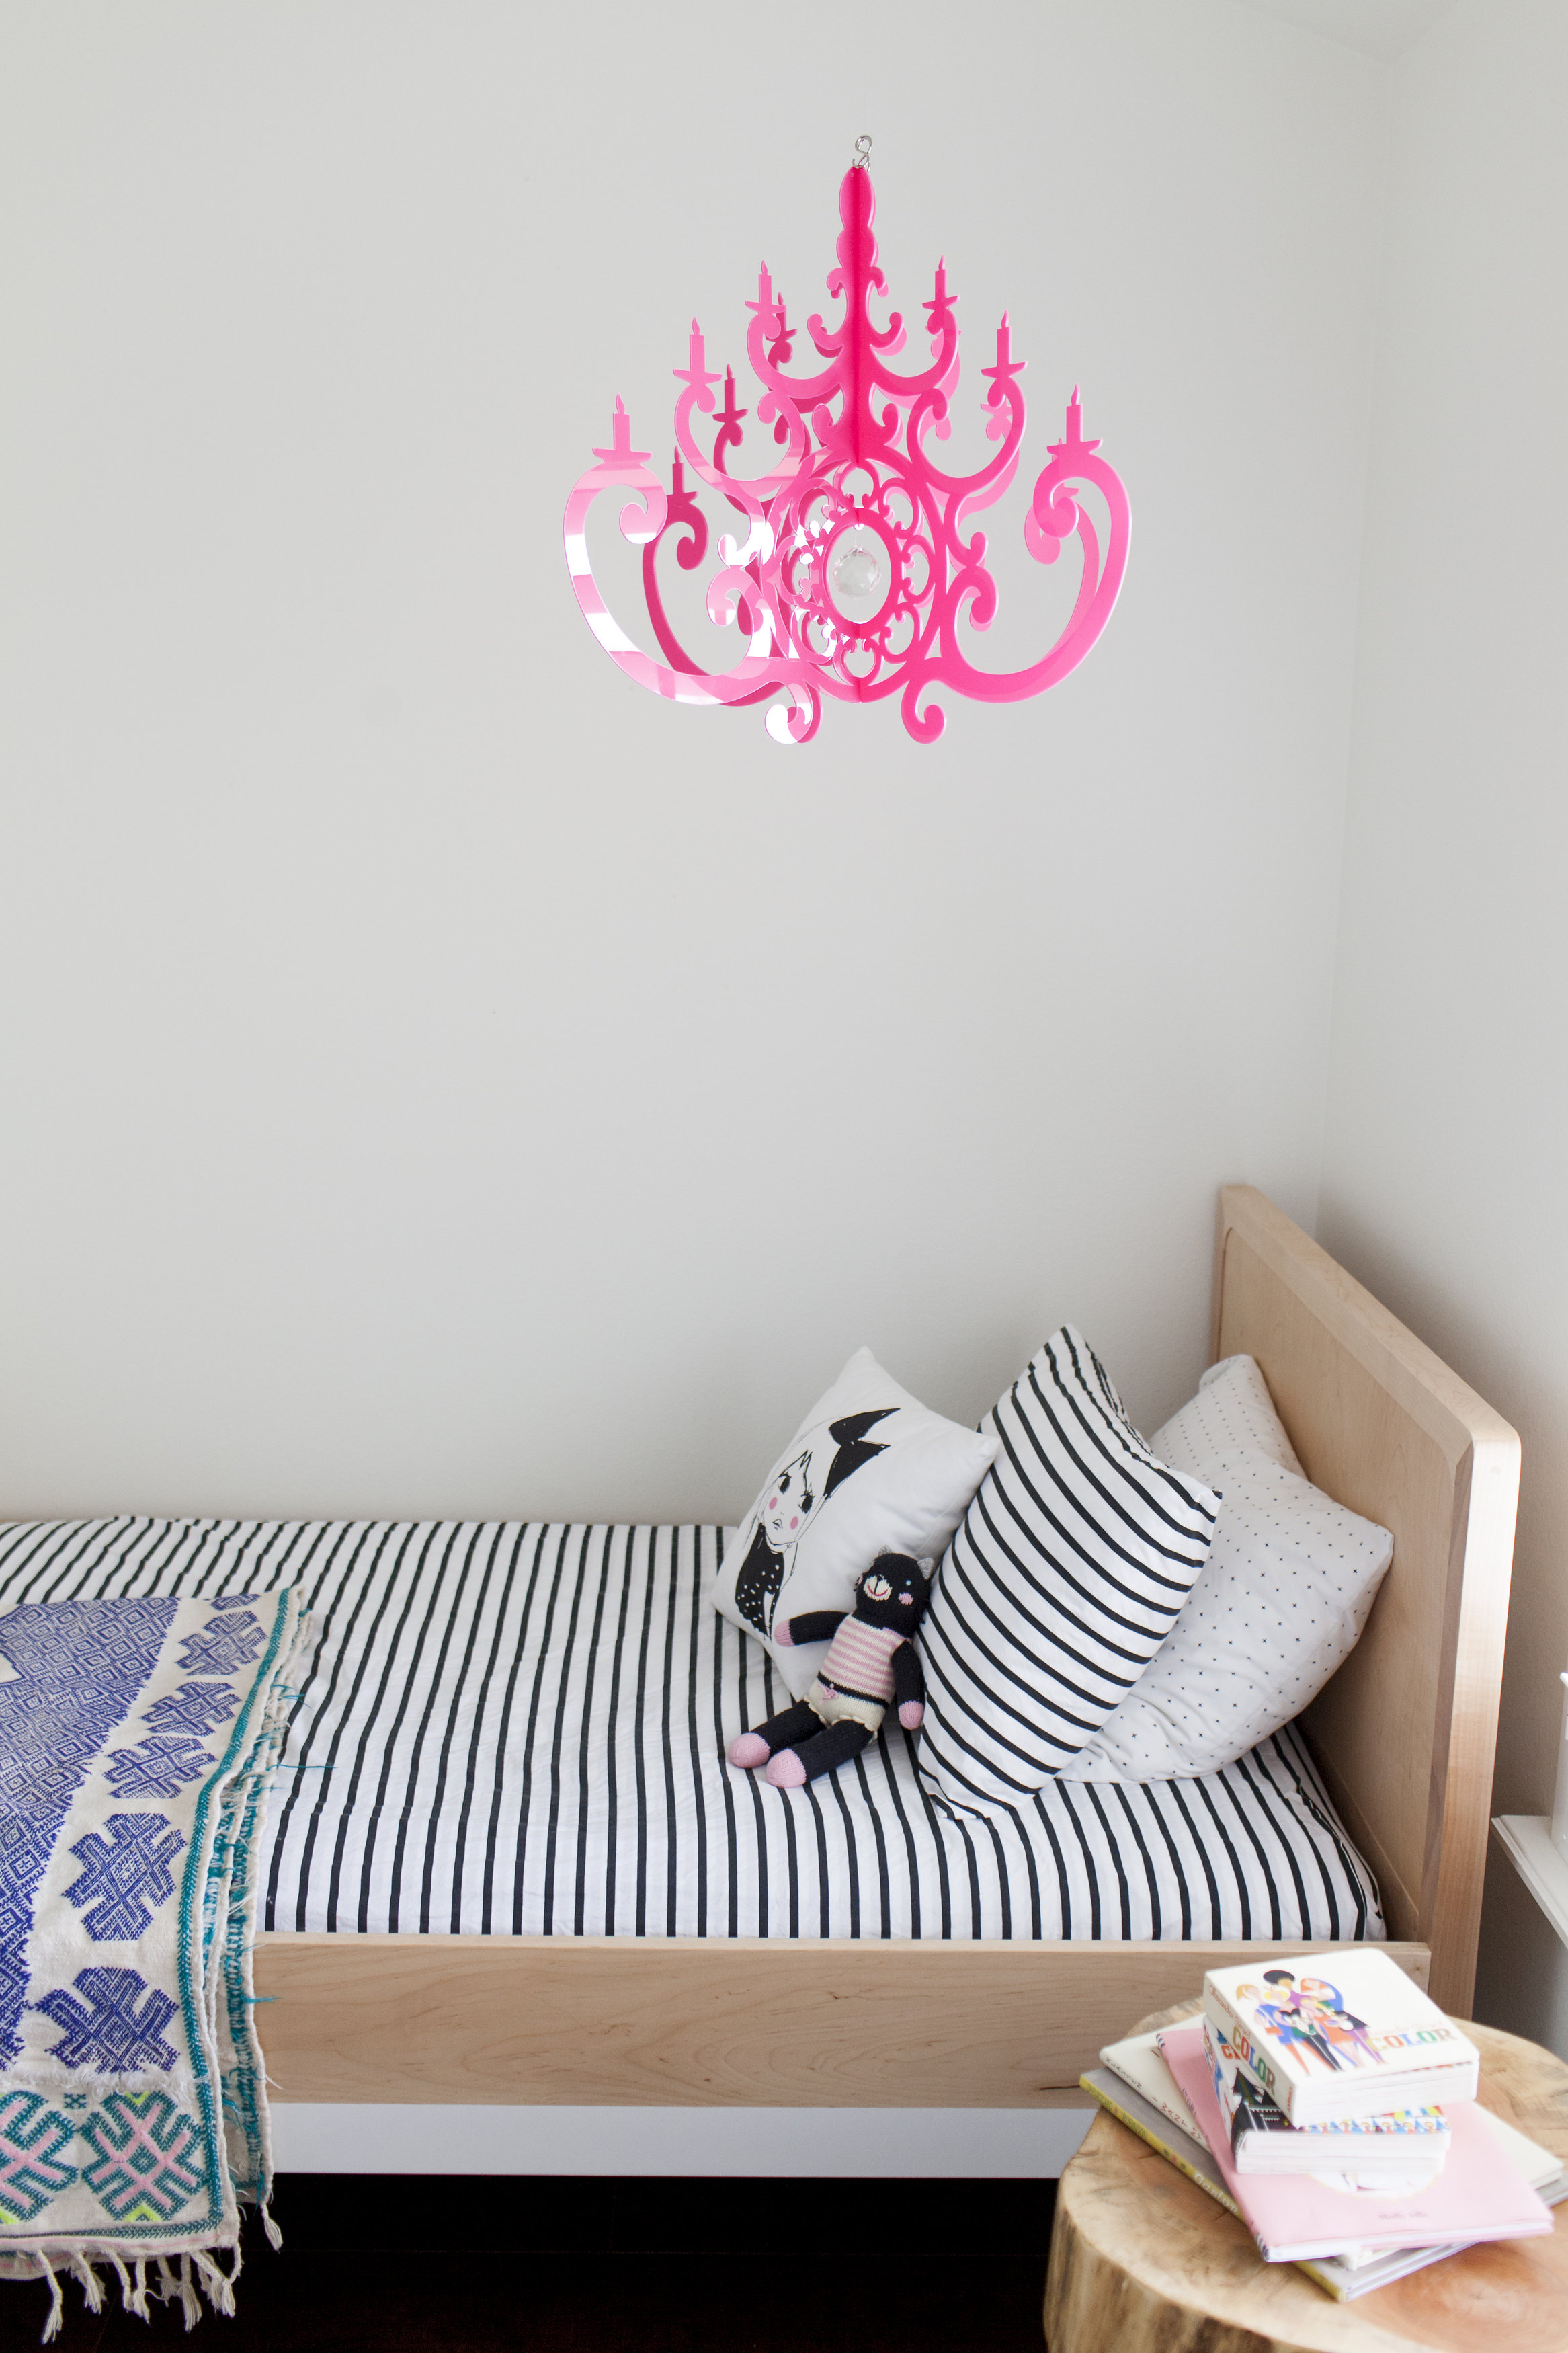 Shades of pink with our hot pink fancy chandelier, pink in bedspread, pink in books, pink in stuffed cat, pink on pillow. Perfect!